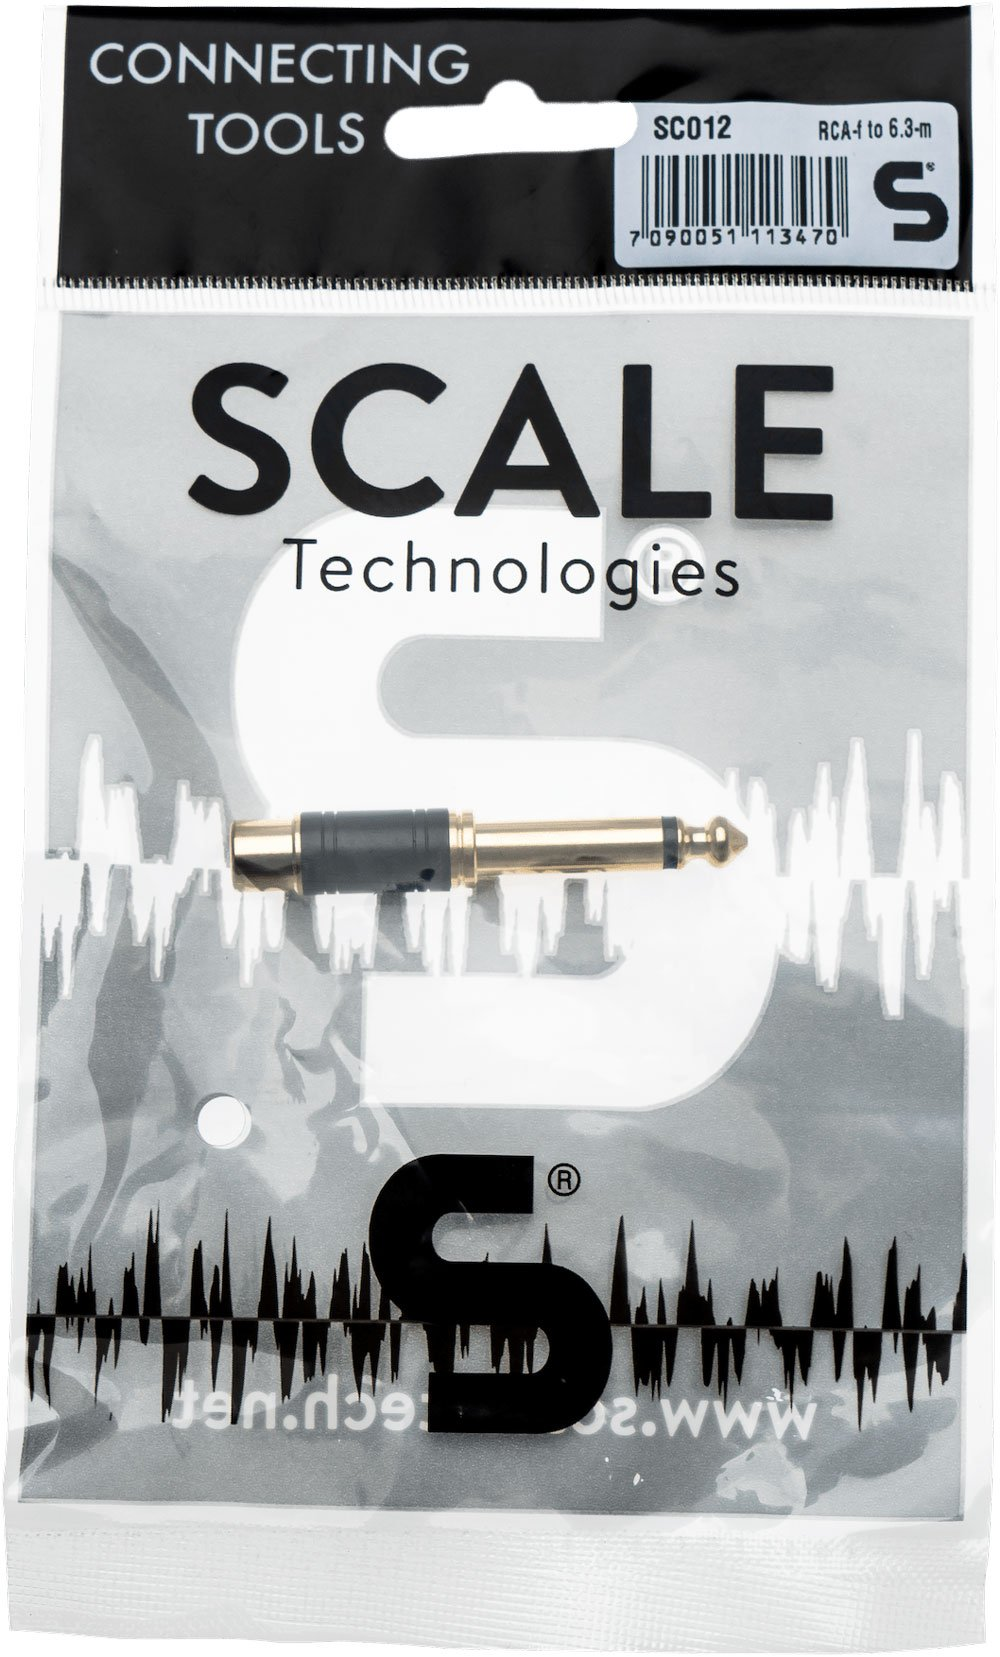 3m Adapter|Scale Technologies SC012 - RCA to Jack 6